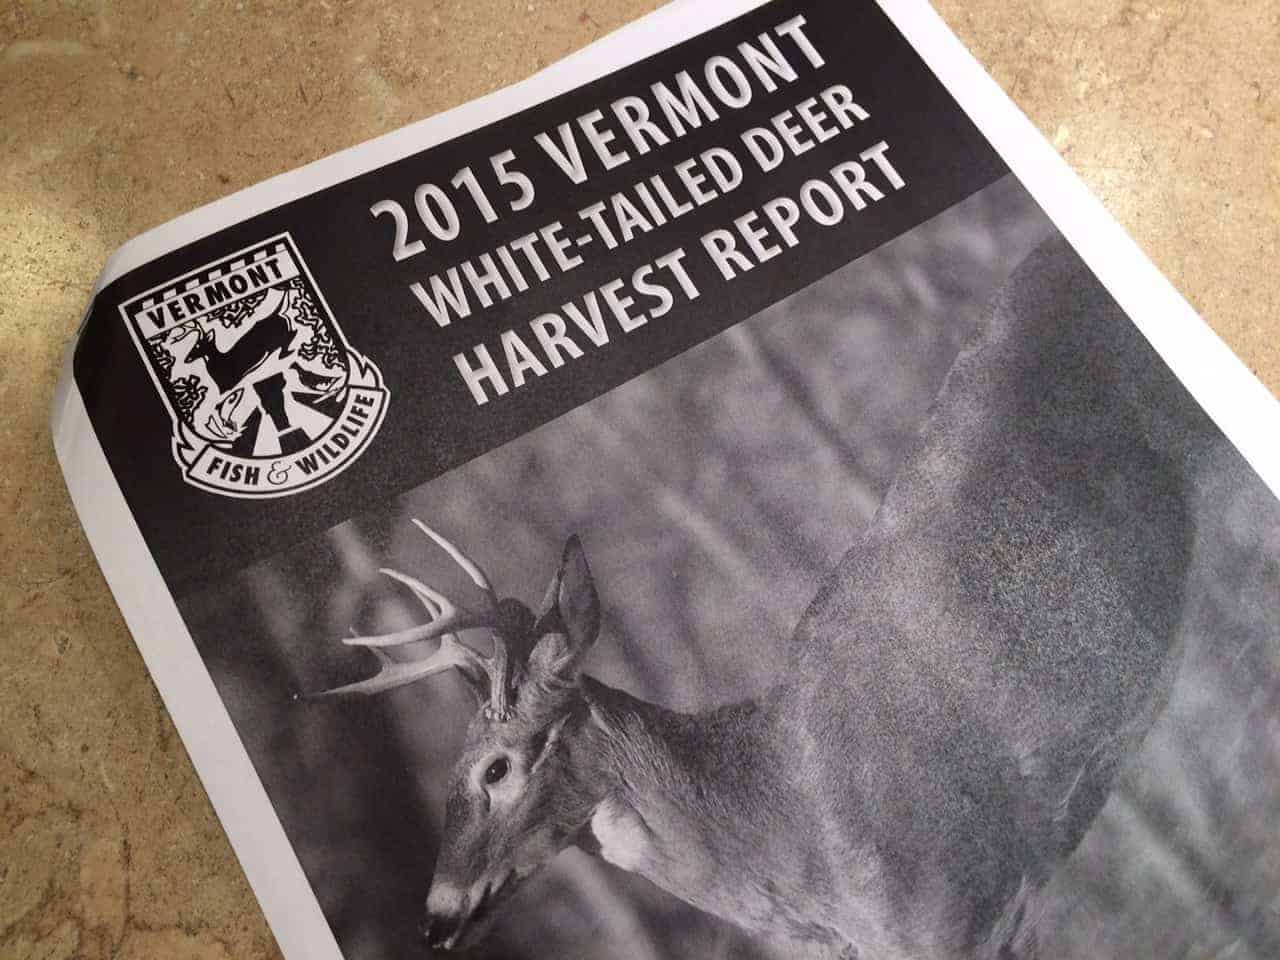 2015 Vermont Deer Harvest Report